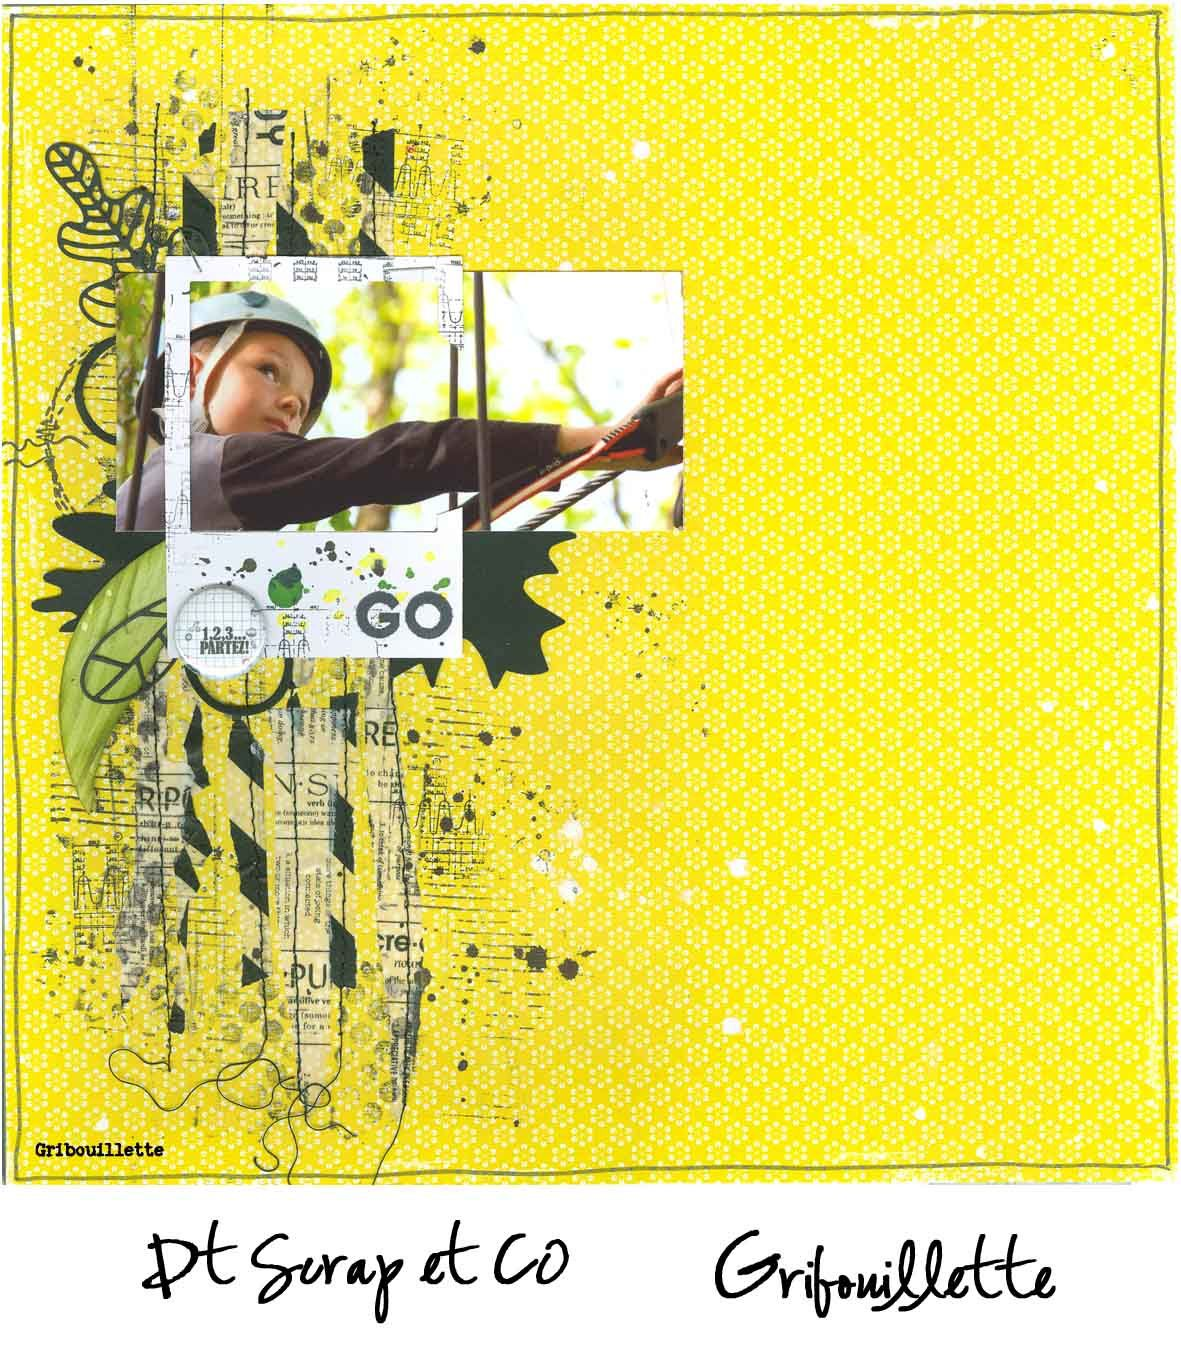 Go_Challenge sketch_DT Scrap et Co